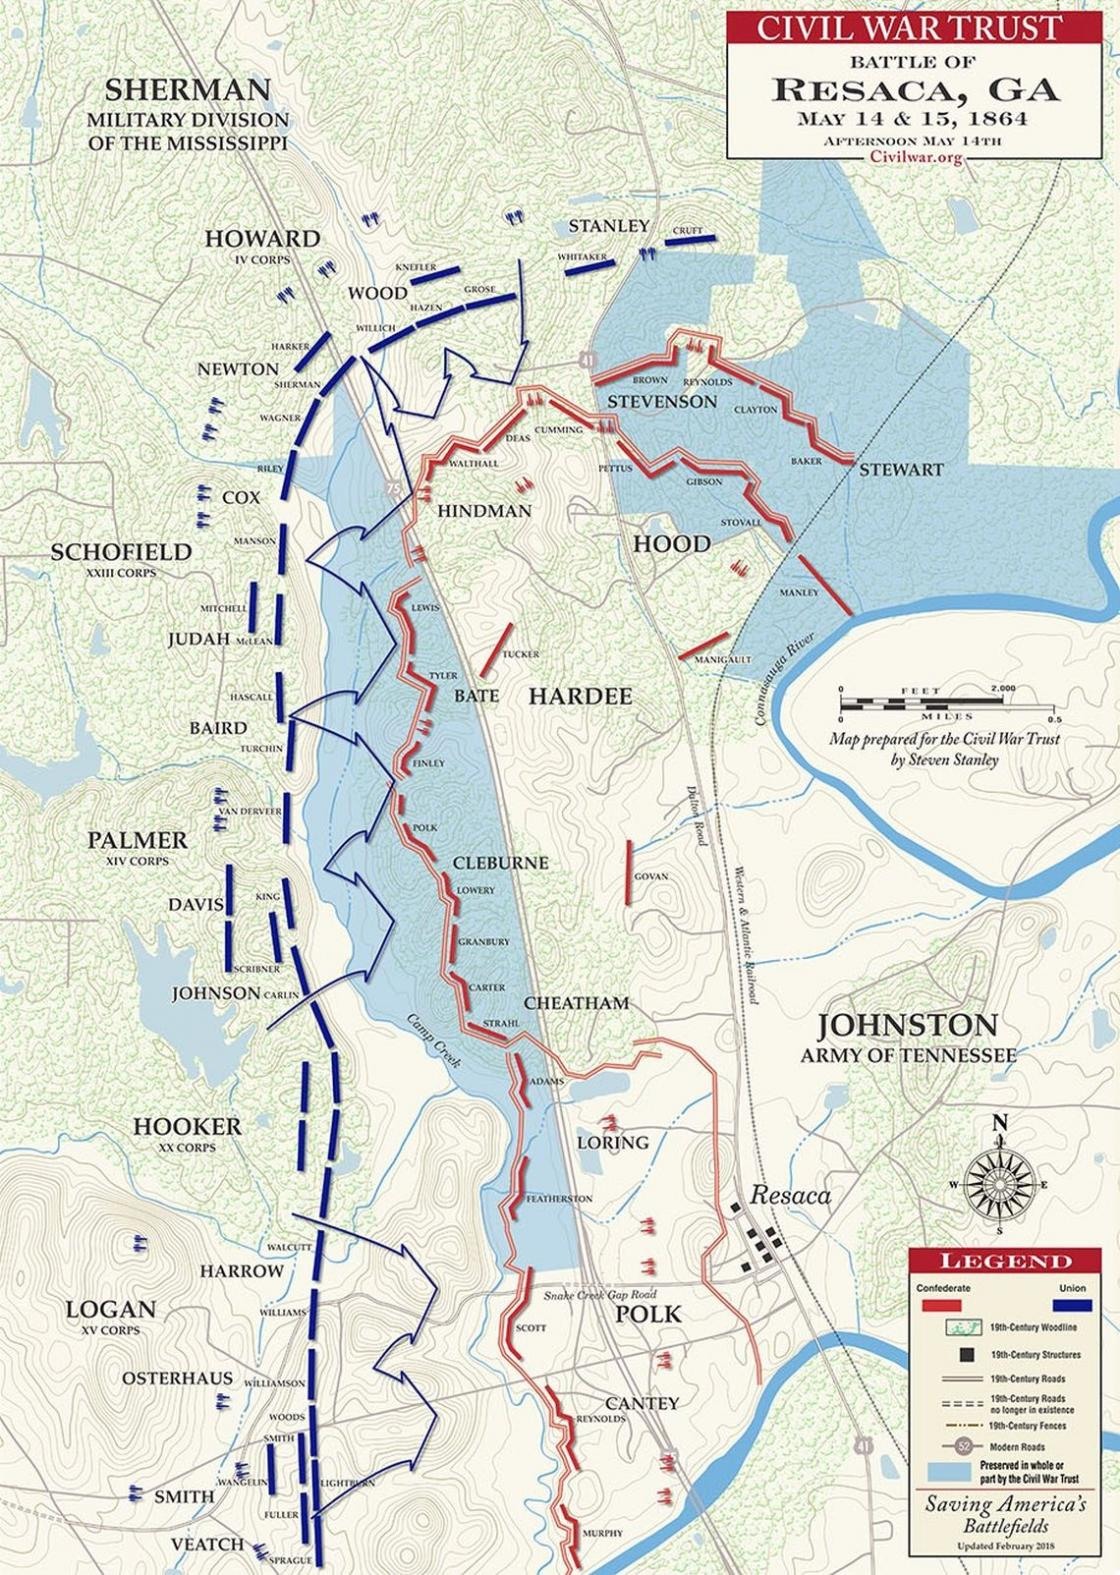 Battle of Resaca, Afternoon, May 14, 1864